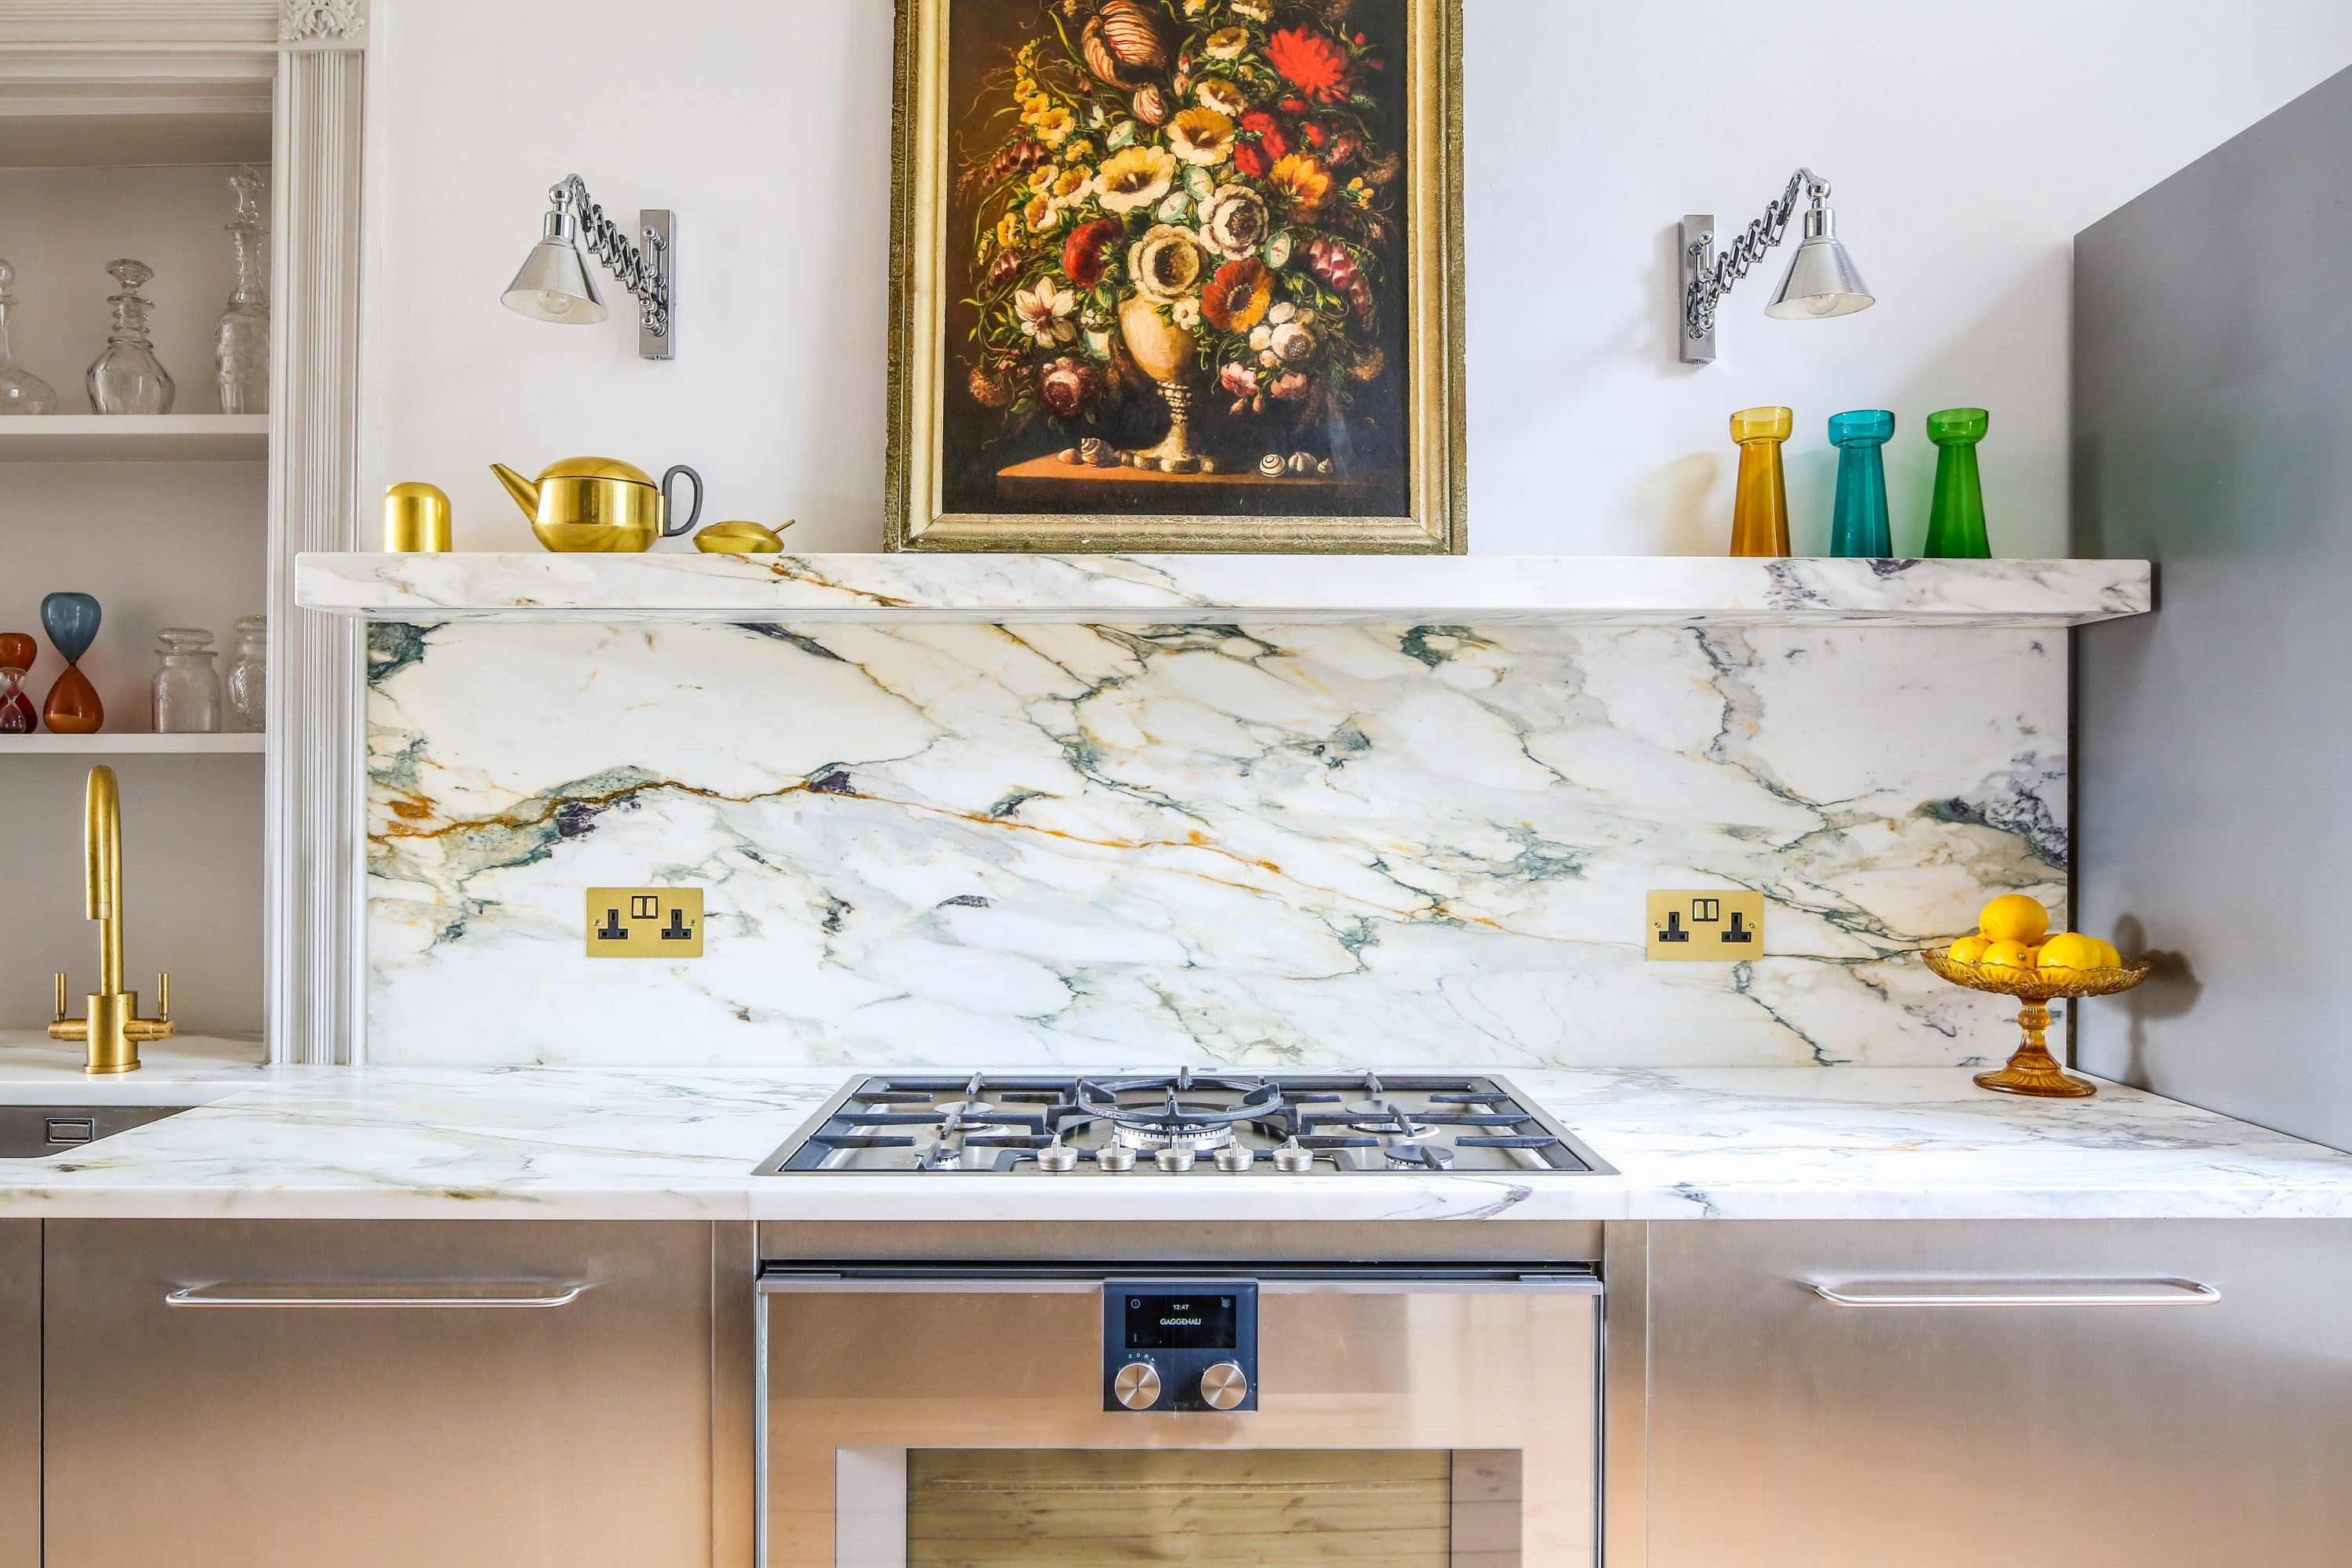 View of kitchen cabinets wrapped in Stainless Steel with a marble worktop with gas hob and sink.